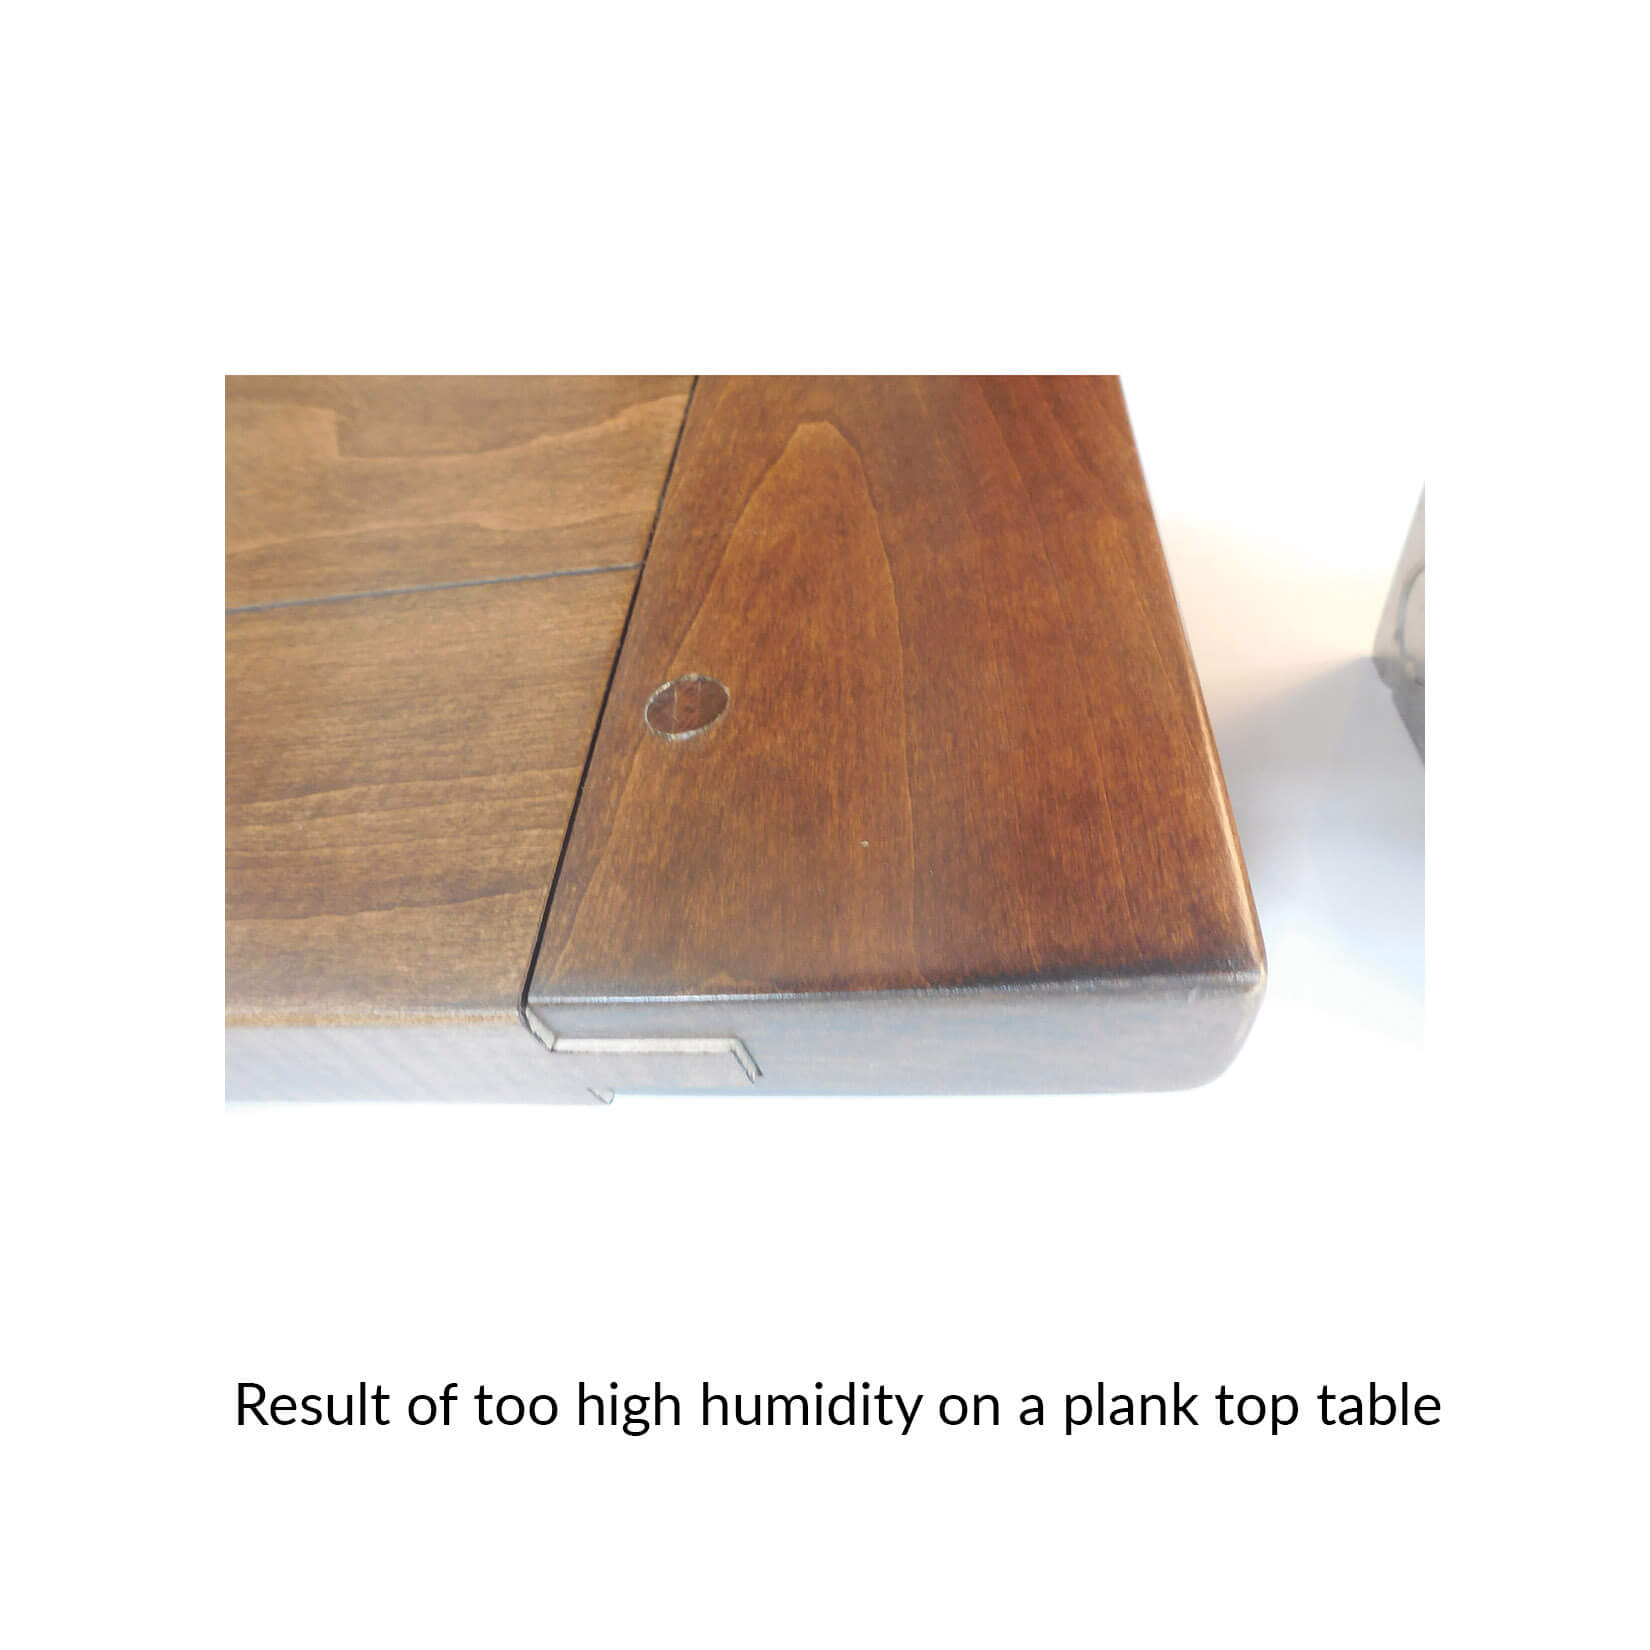 1.-result-of-too-high-humidity-on-a-plank-top-table.jpg